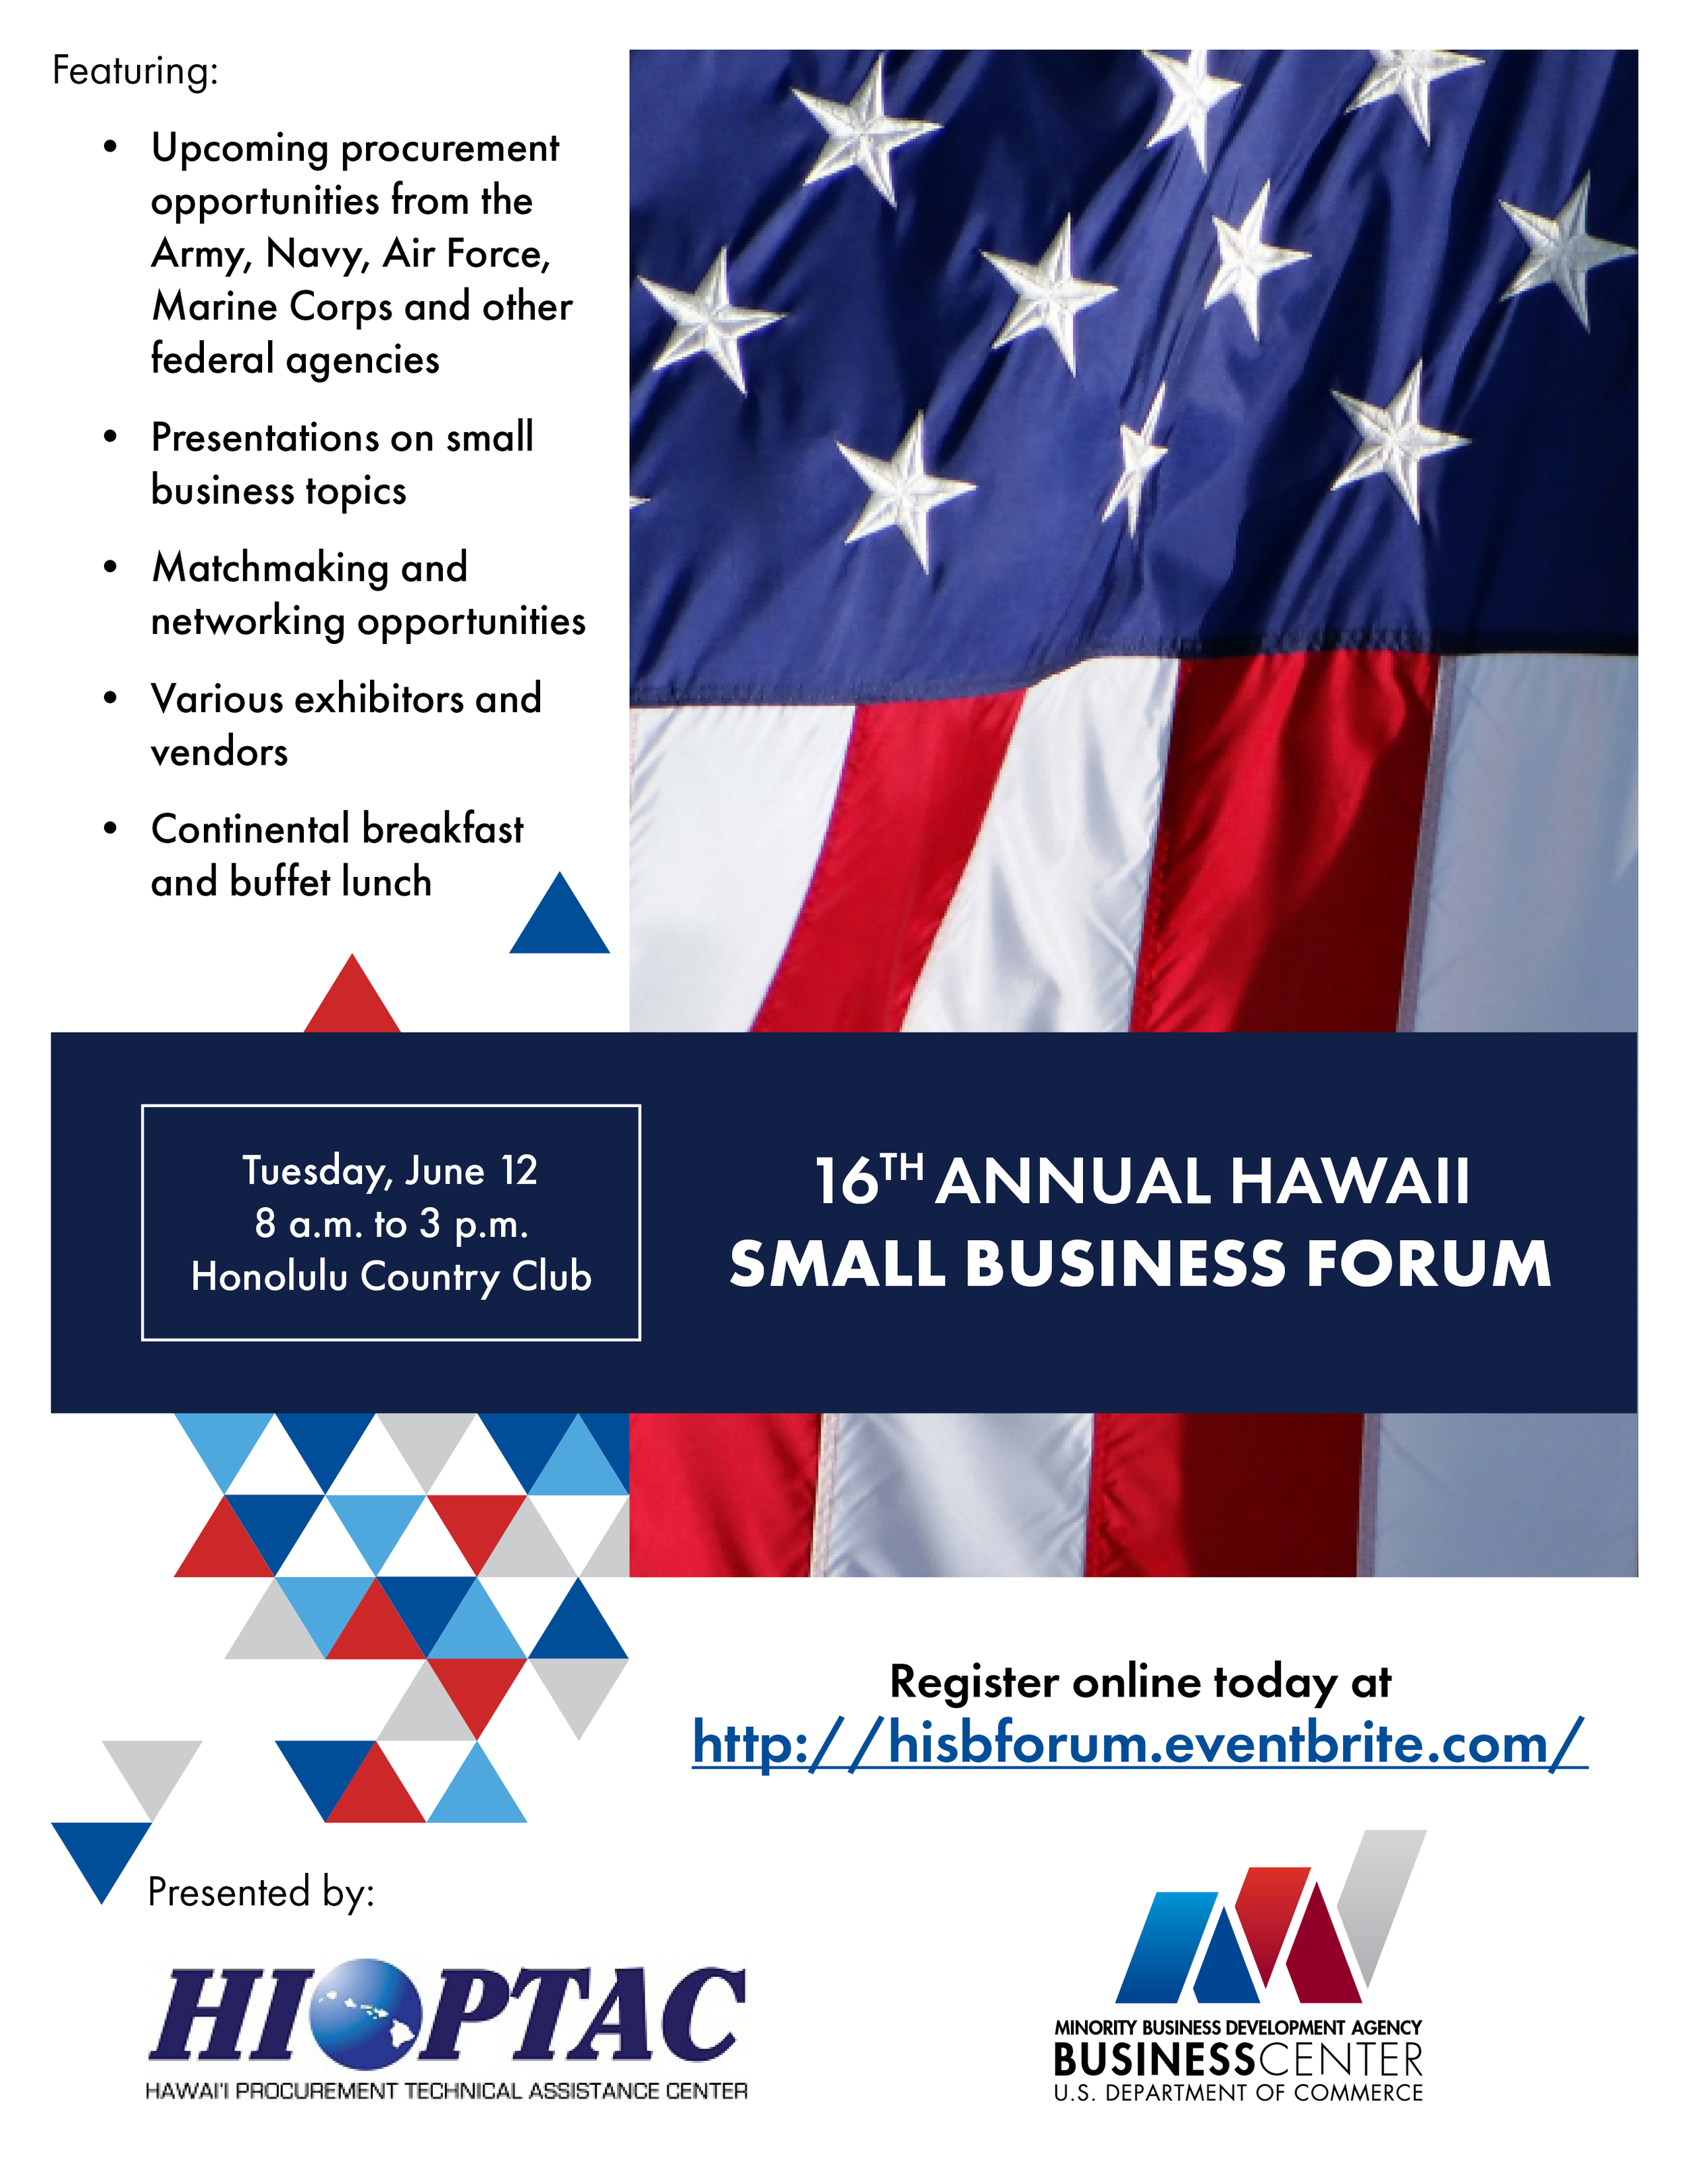 Hawaii Small Business Forum Flyer.png